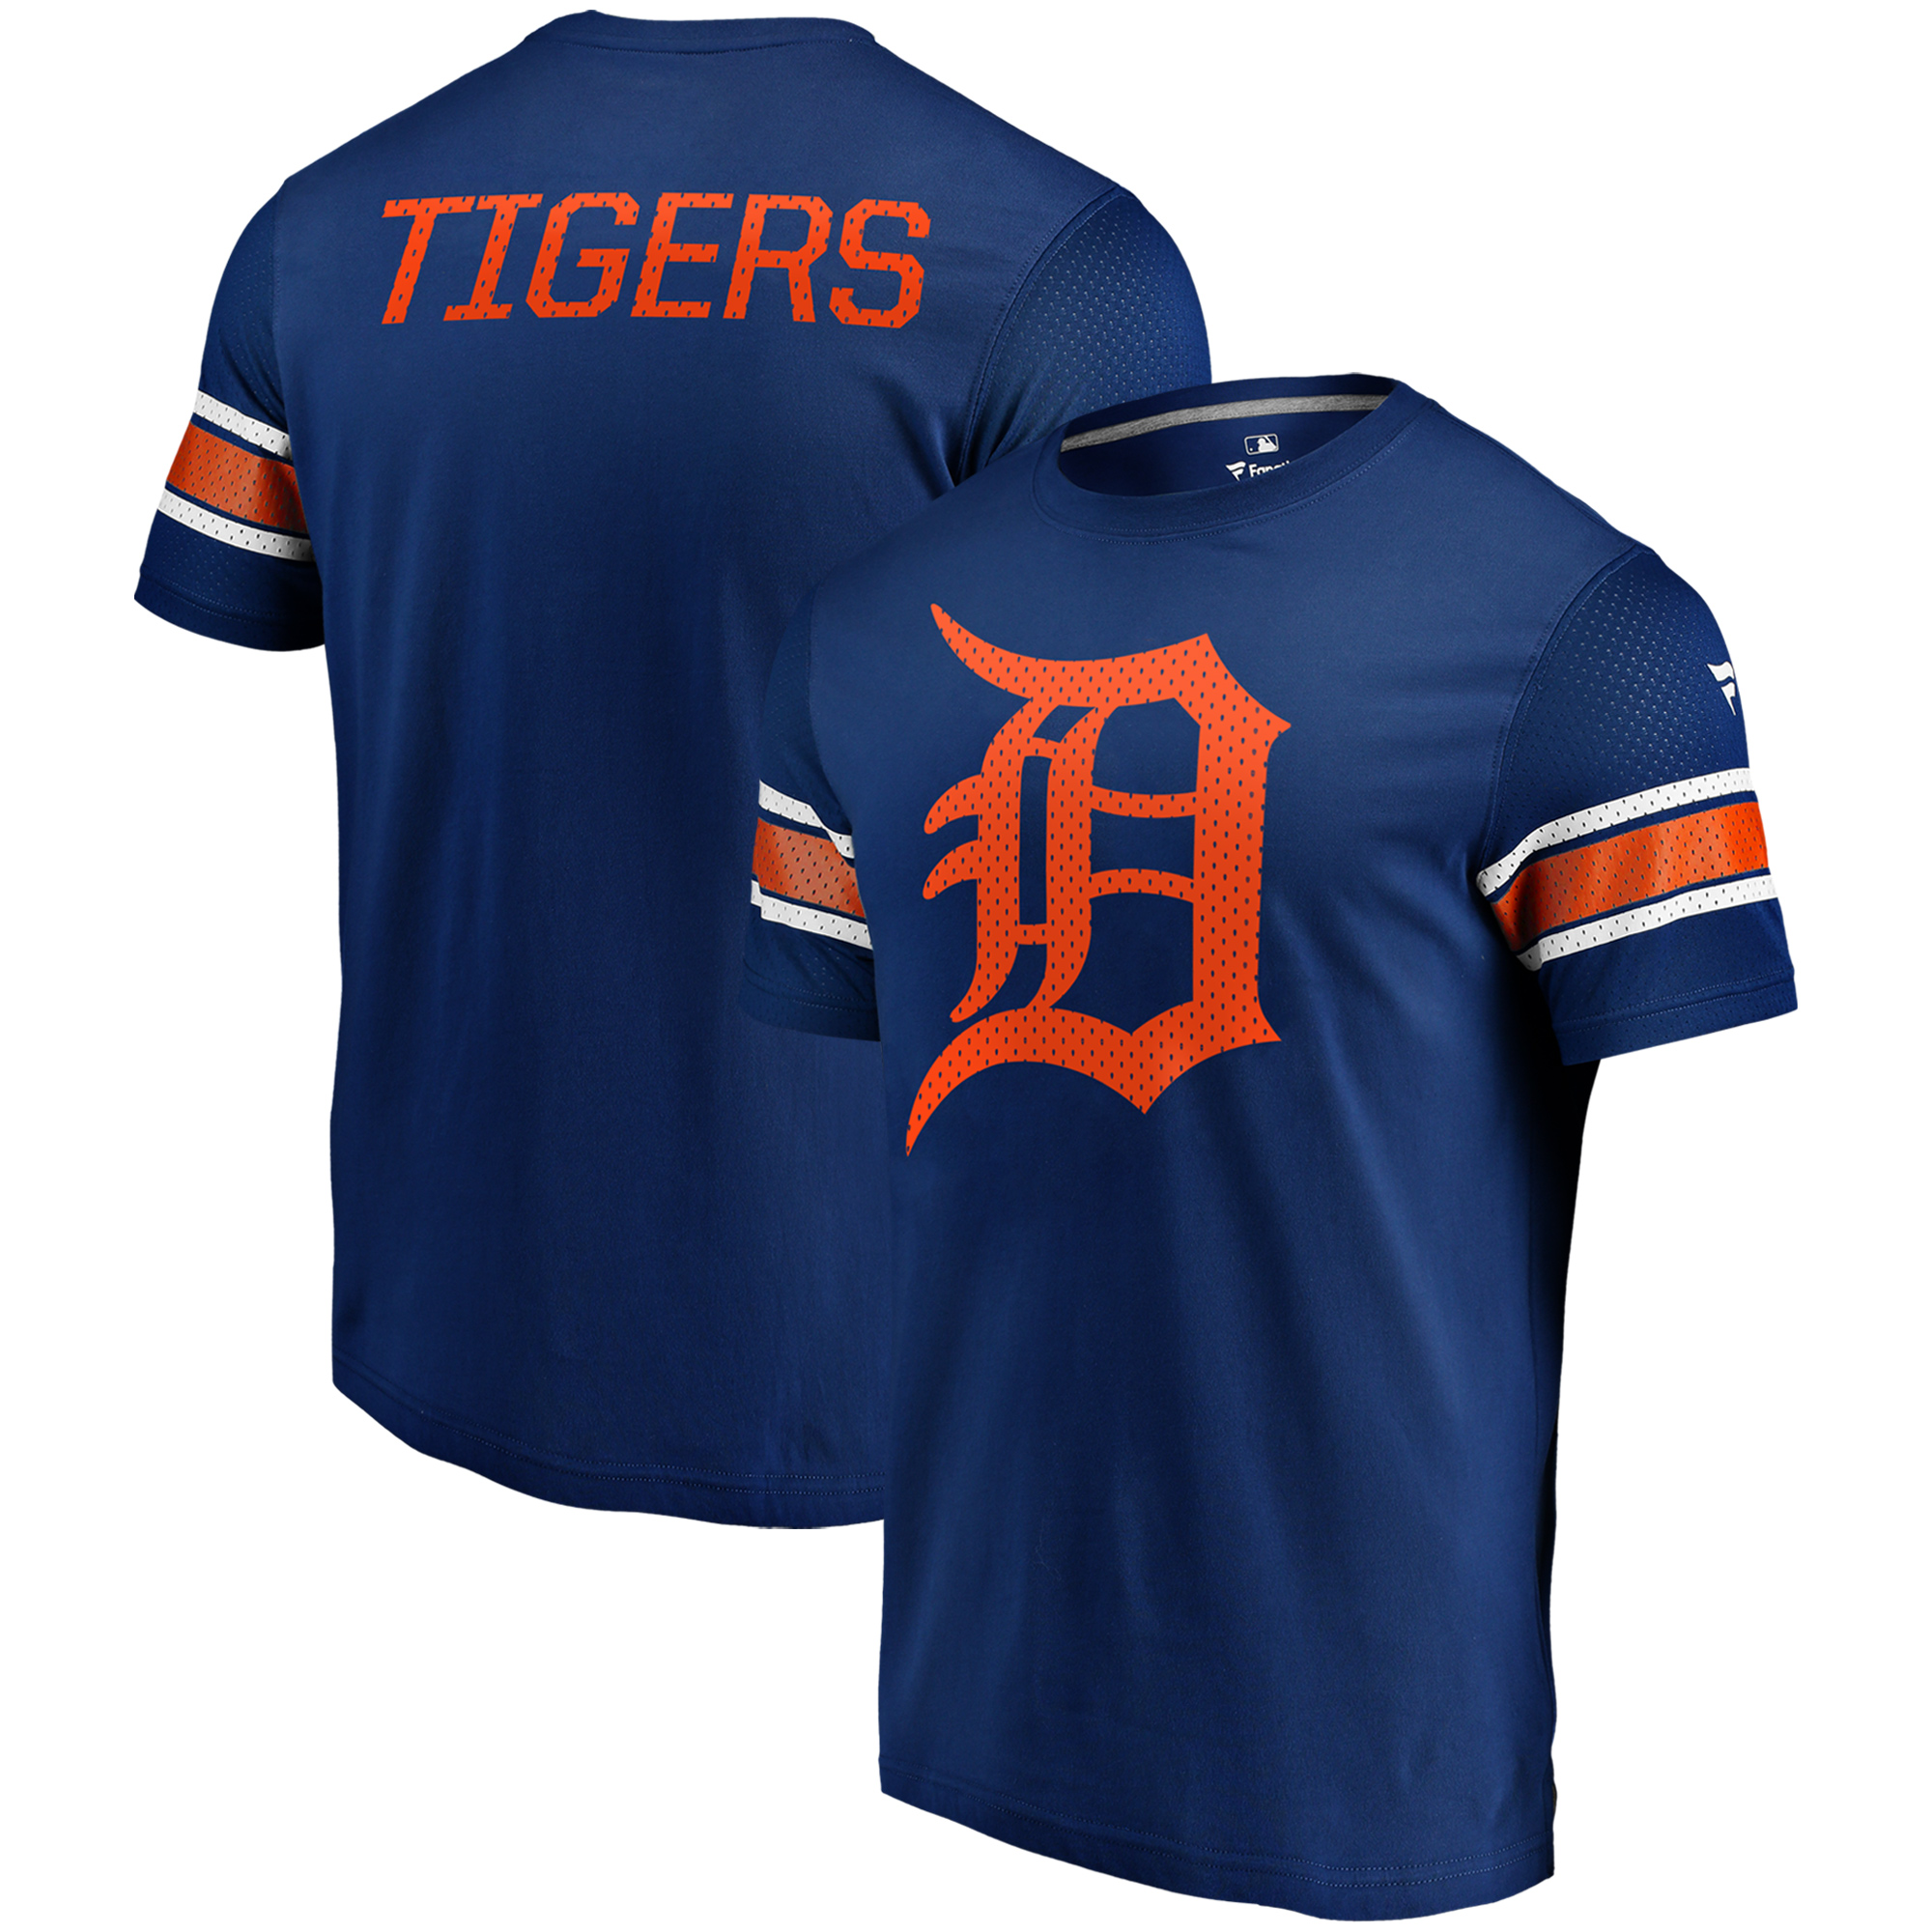 Detroit Tigers Fanatics Branded Iconic Jersey T-Shirt - Navy